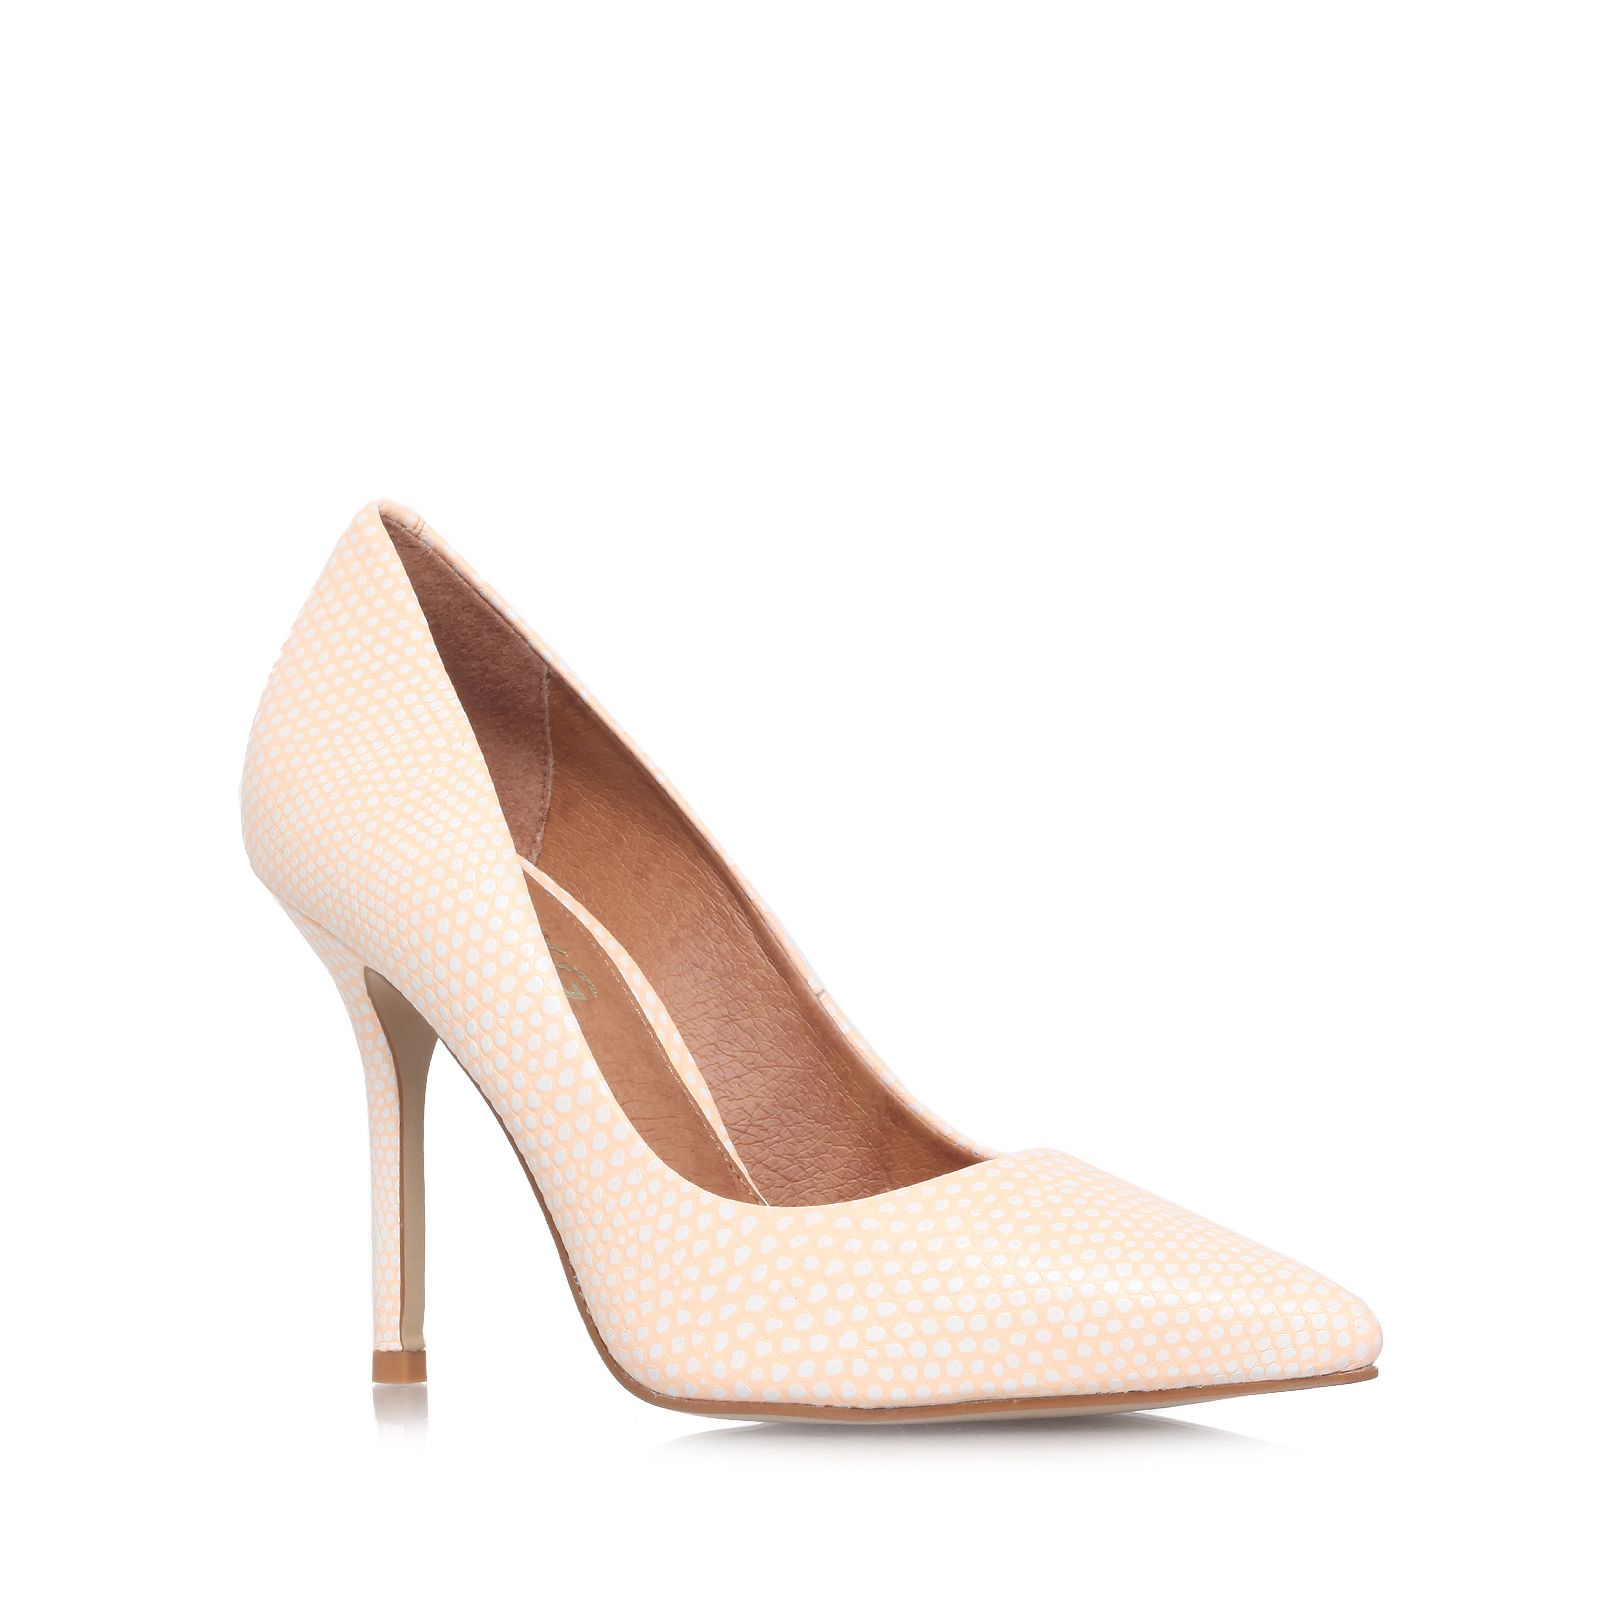 Anabela high heel court shoes